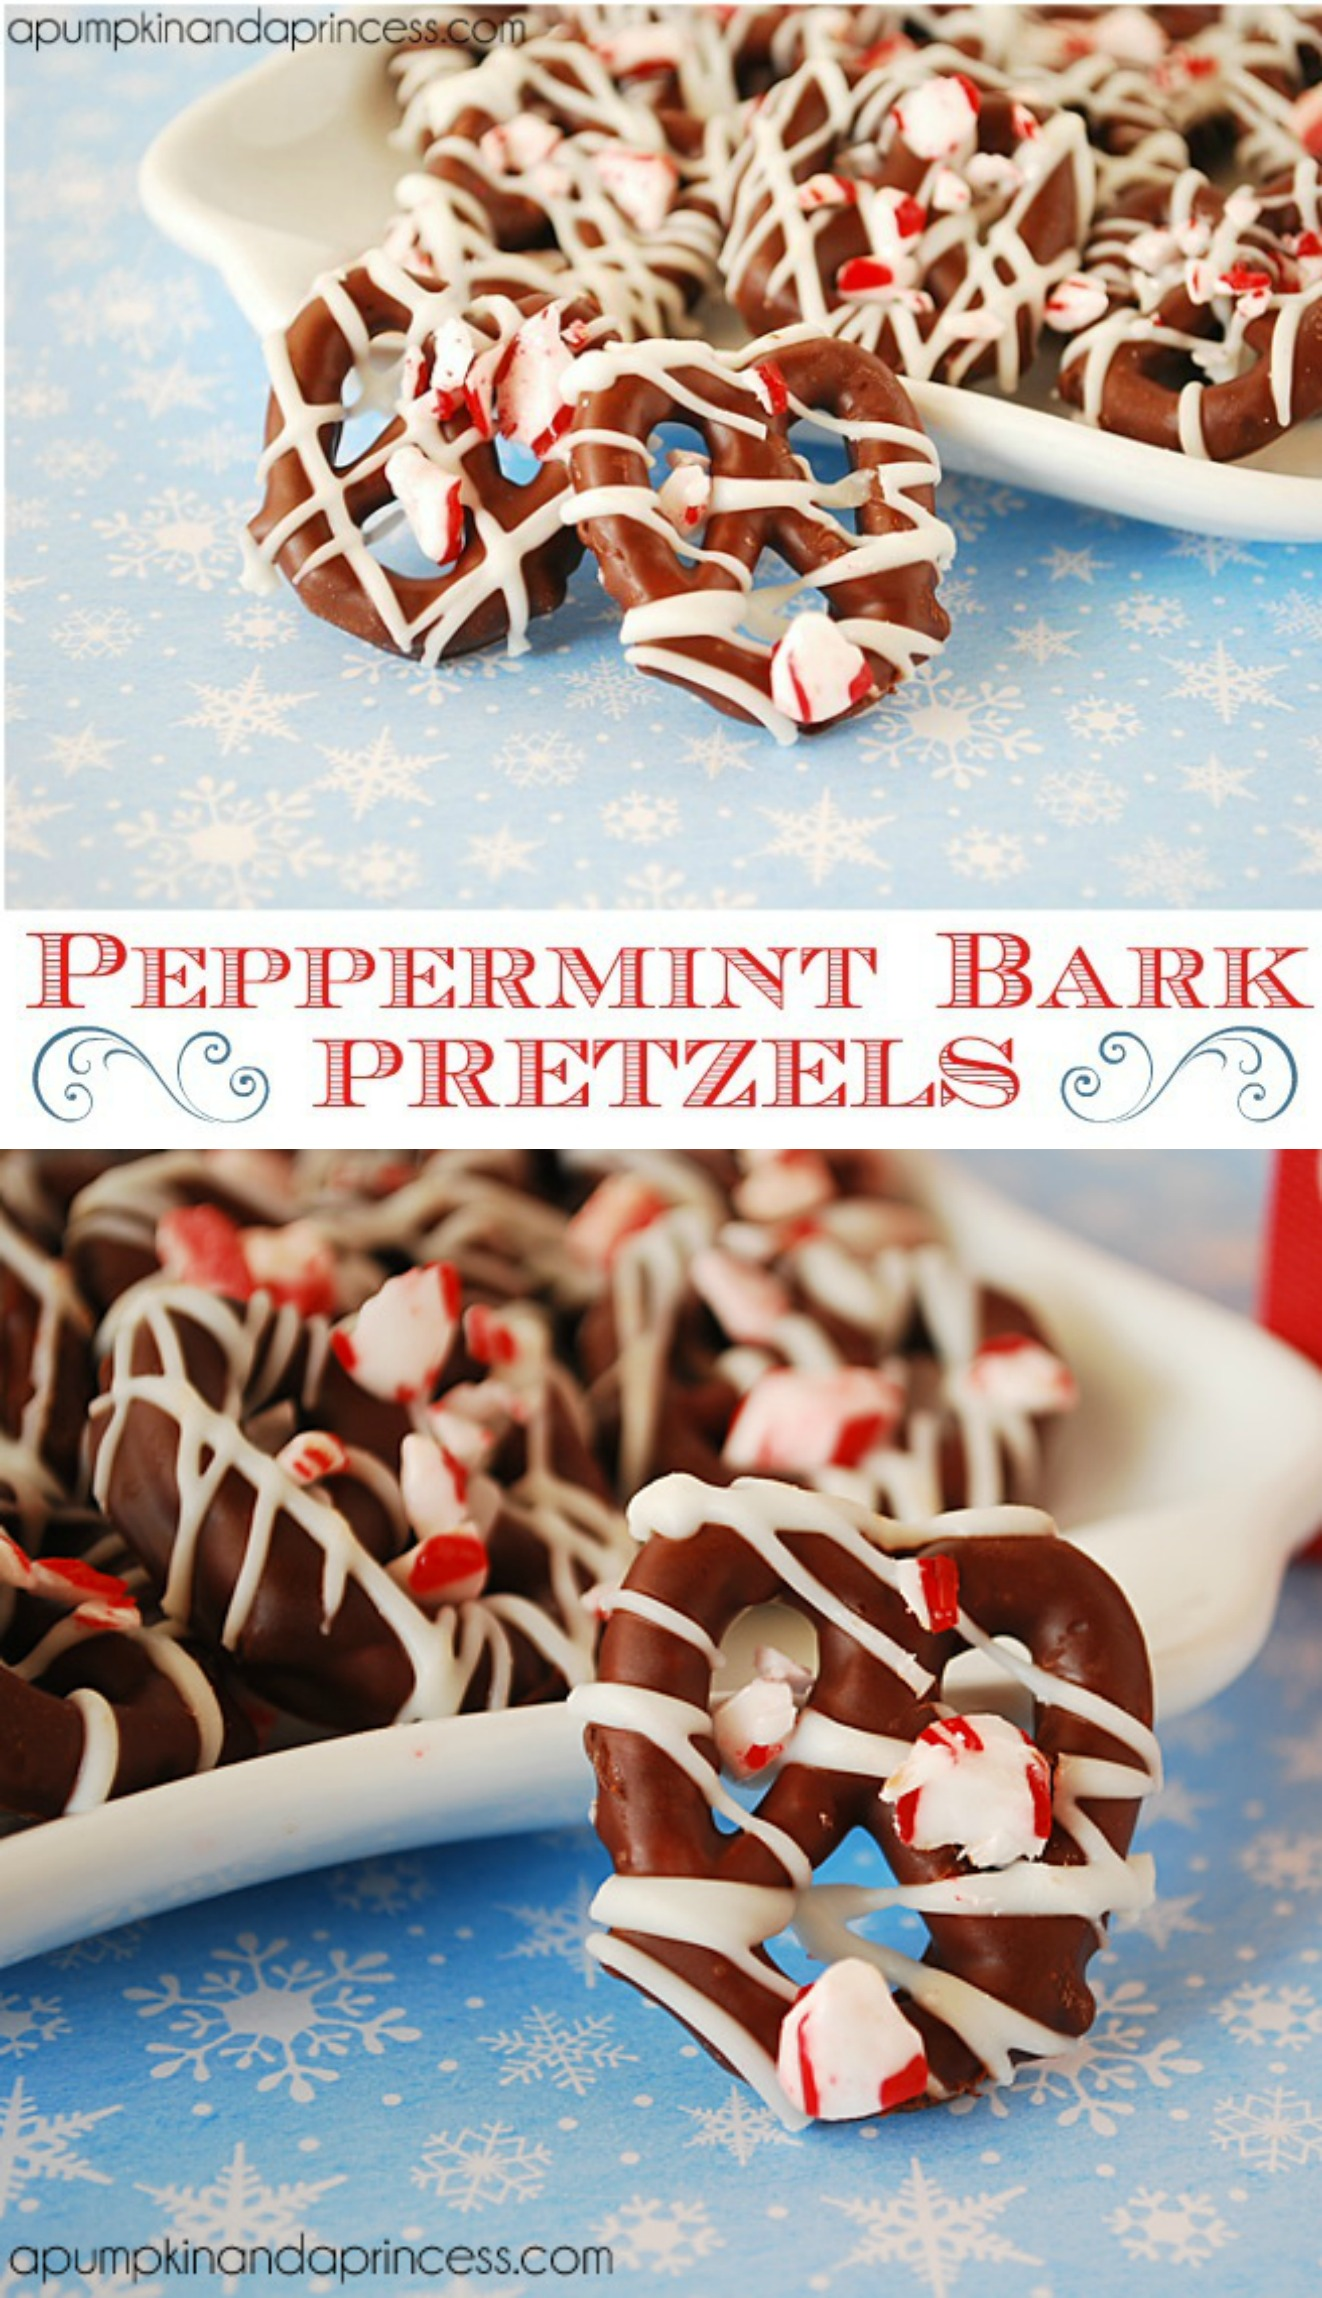 Peppermint Bark Pretzels Recipe